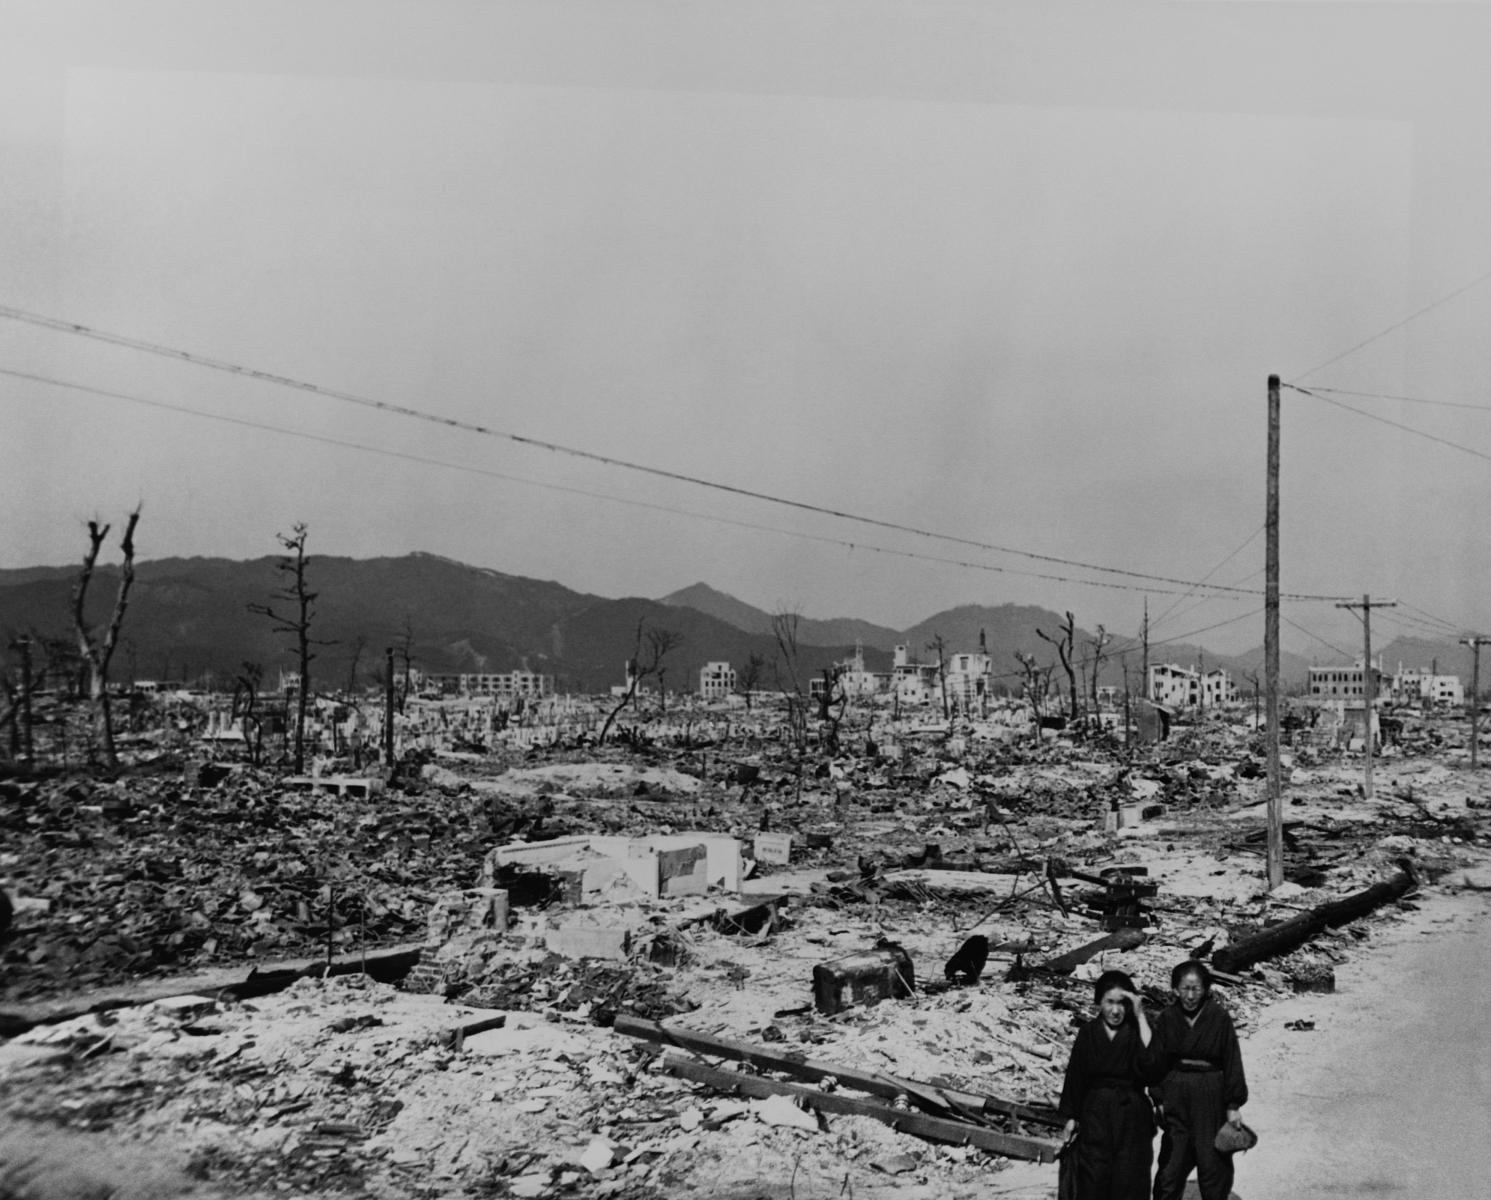 hiroshima historians ressess Despite the larger ideological motivations most often cited by historians, the mokusatsu translation blunder is in fact the actual historical event that directly triggered the dropping of two atomic bombs on hiroshima and nagasaki.